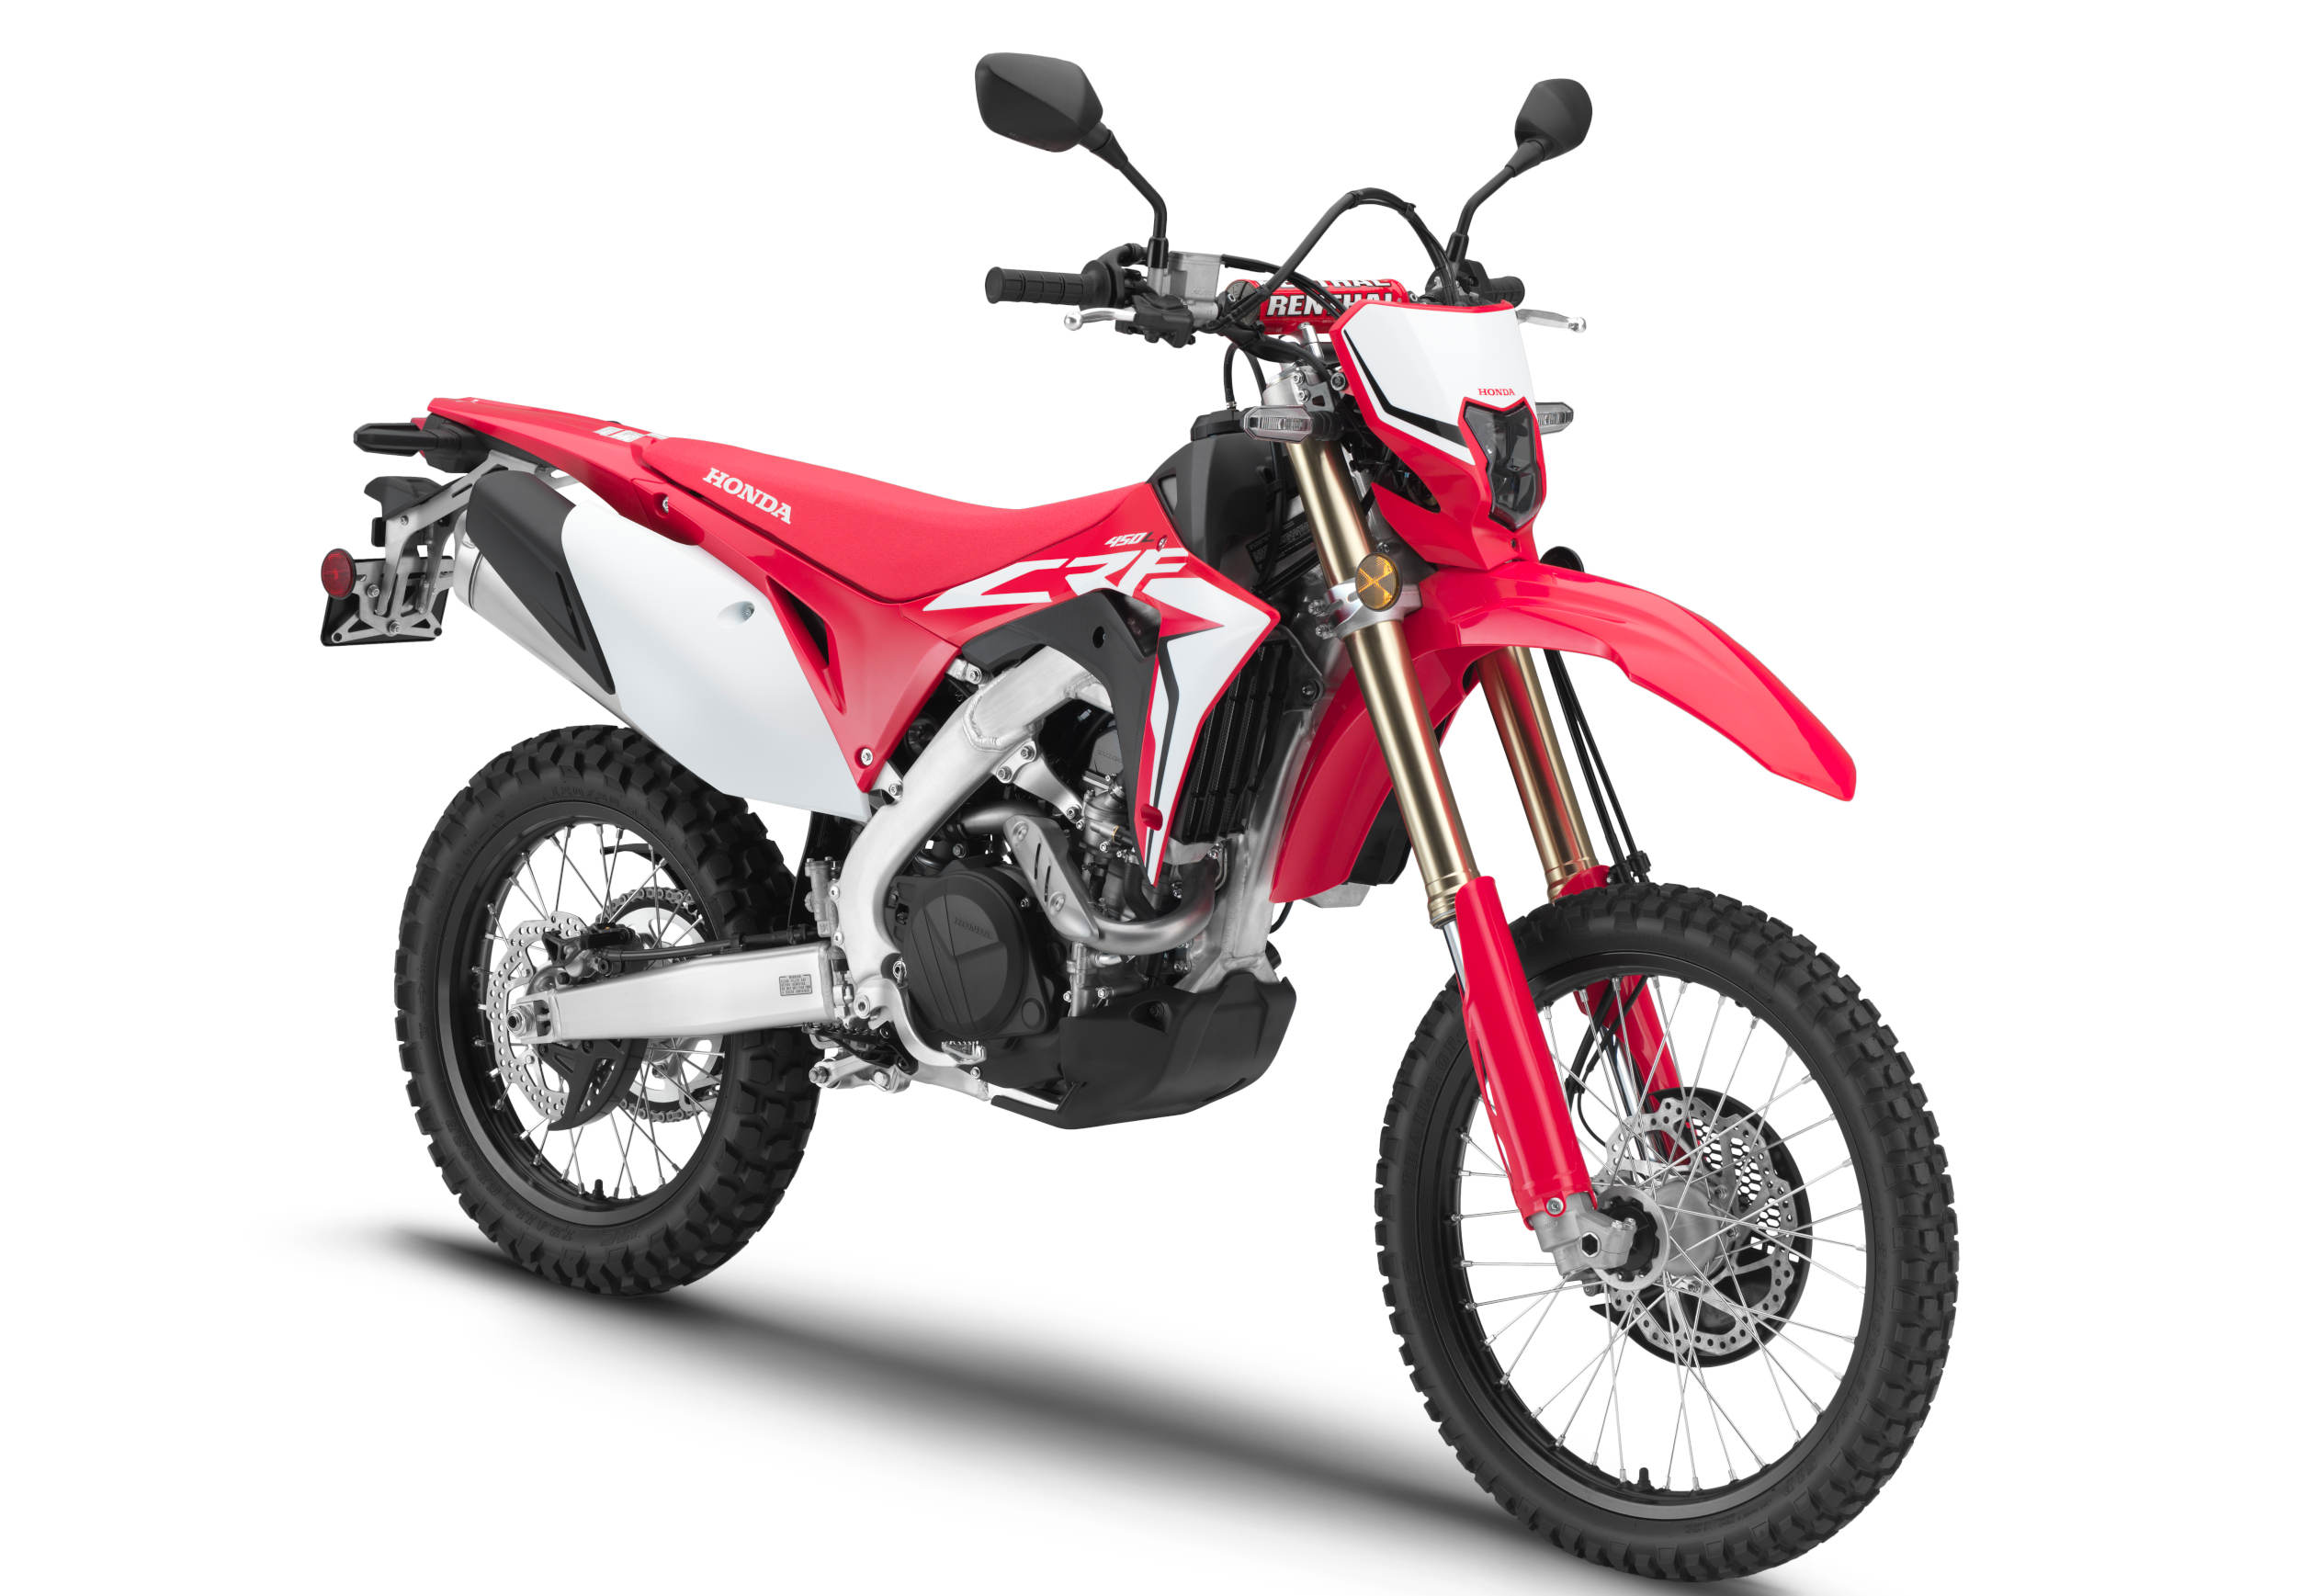 Honda Finally Introduces A Street Legal 450cc Dual Sport U2013 Derived From  Motocrosser!